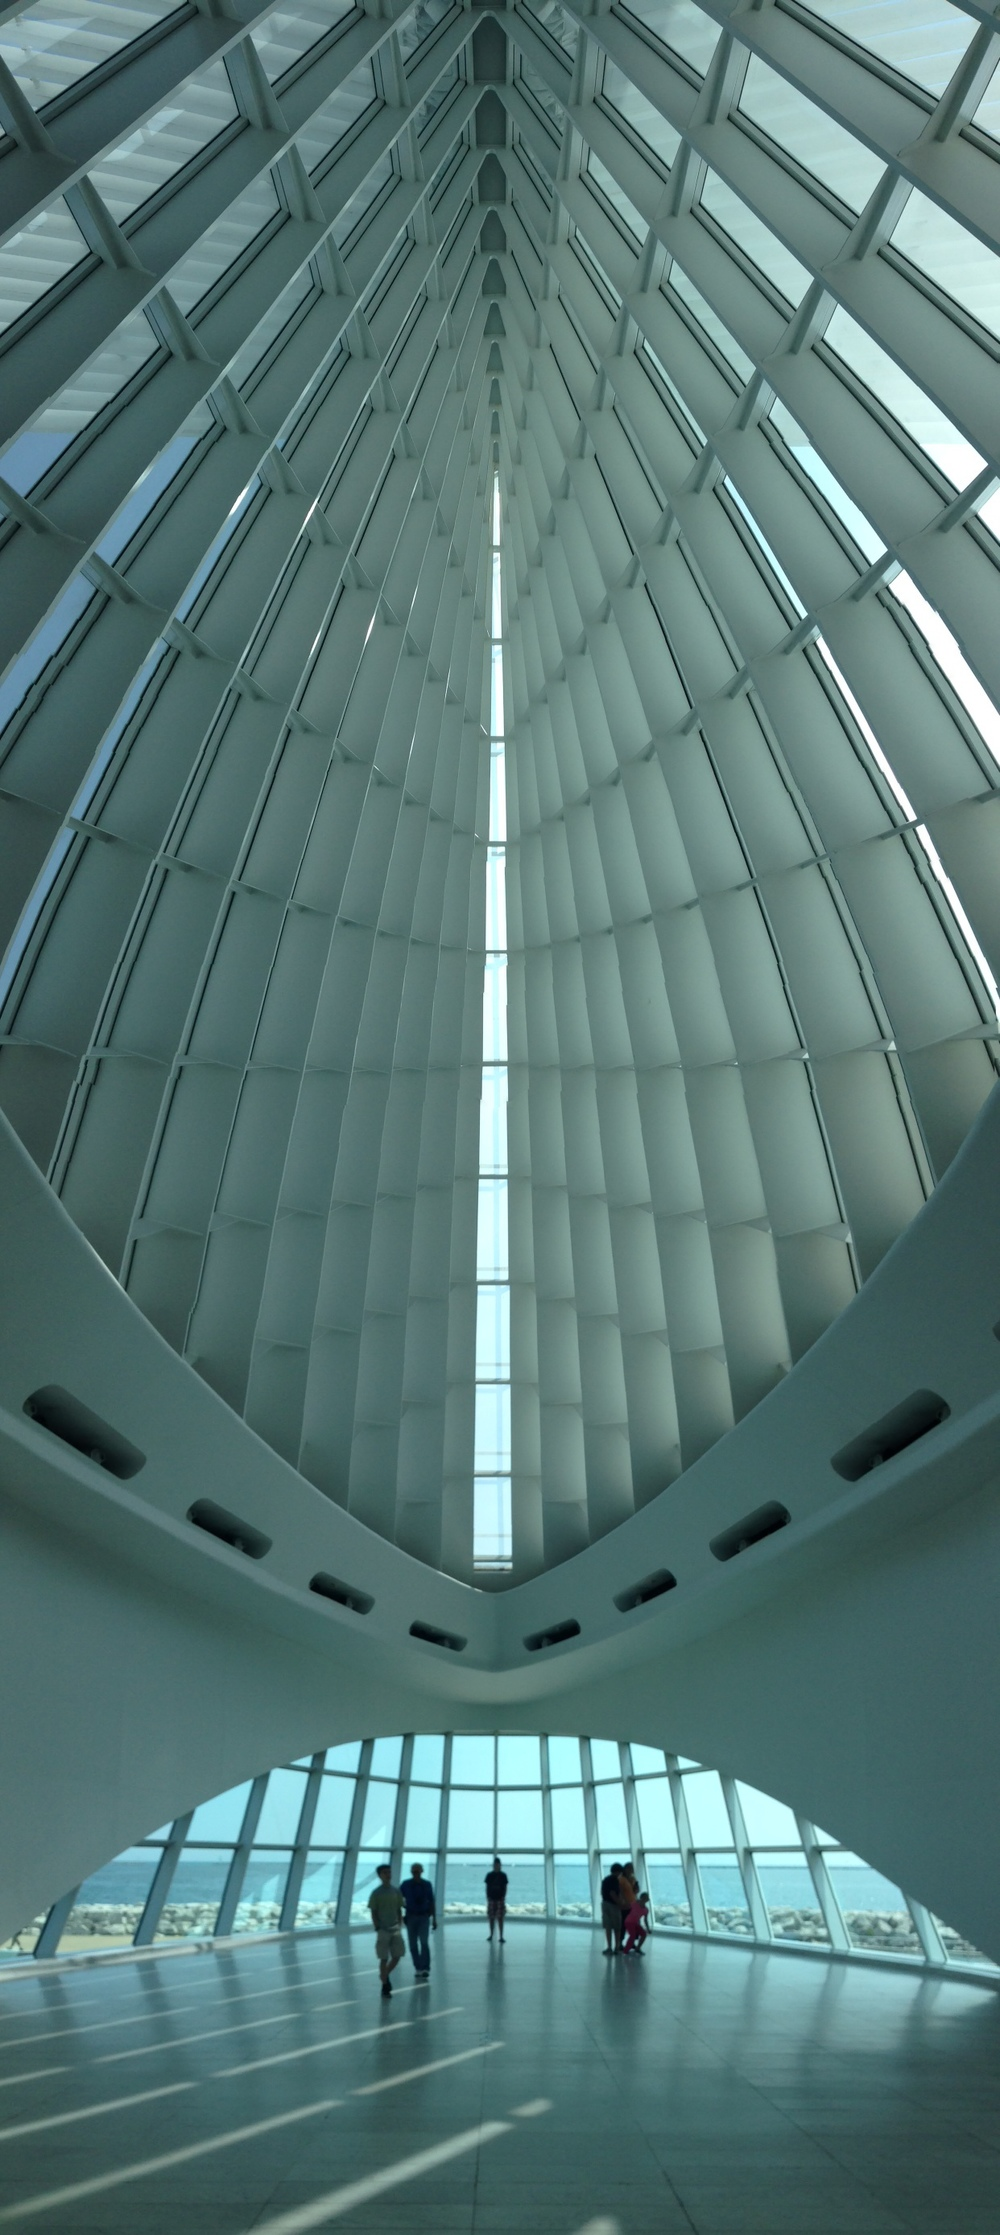 Milwaukee Art Museum - photo by Cormac taken with an Apple iPhone 5